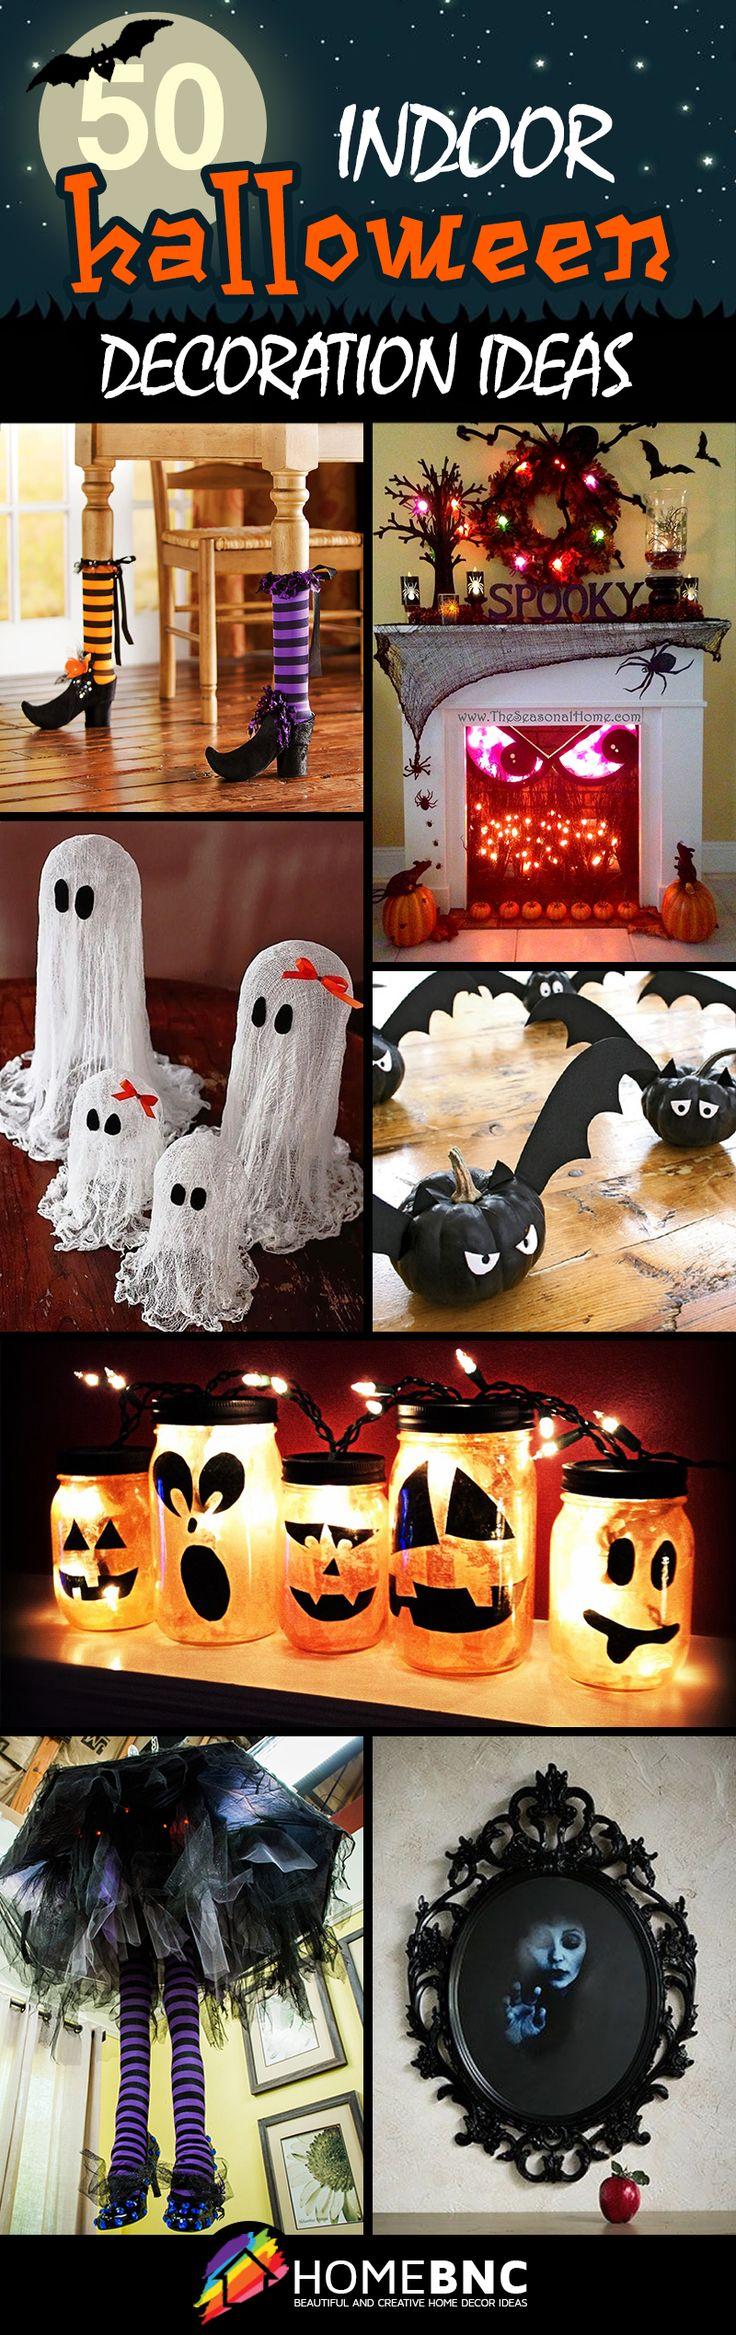 17 best ideas about indoor halloween decorations 2017 on Scary halloween decorating ideas inside